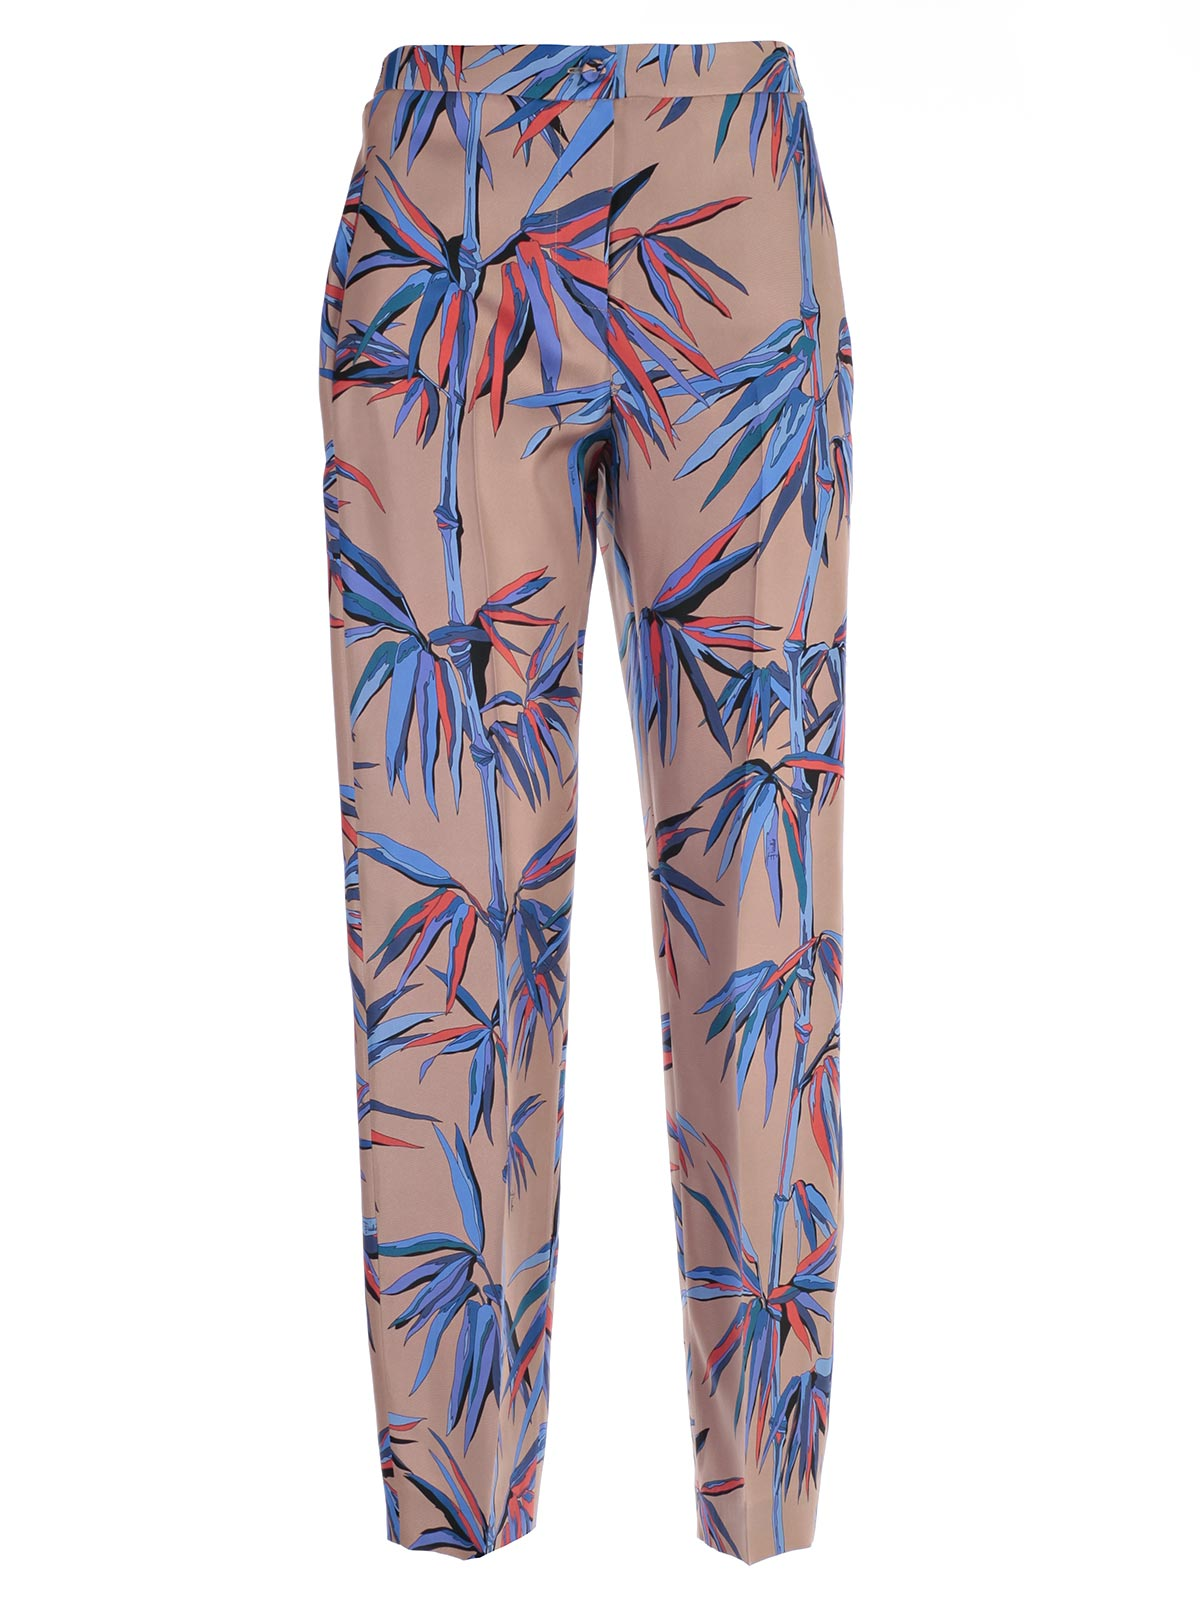 Picture of EMILIO PUCCI TROUSERS PANTALONE STAMPA BAMBOO